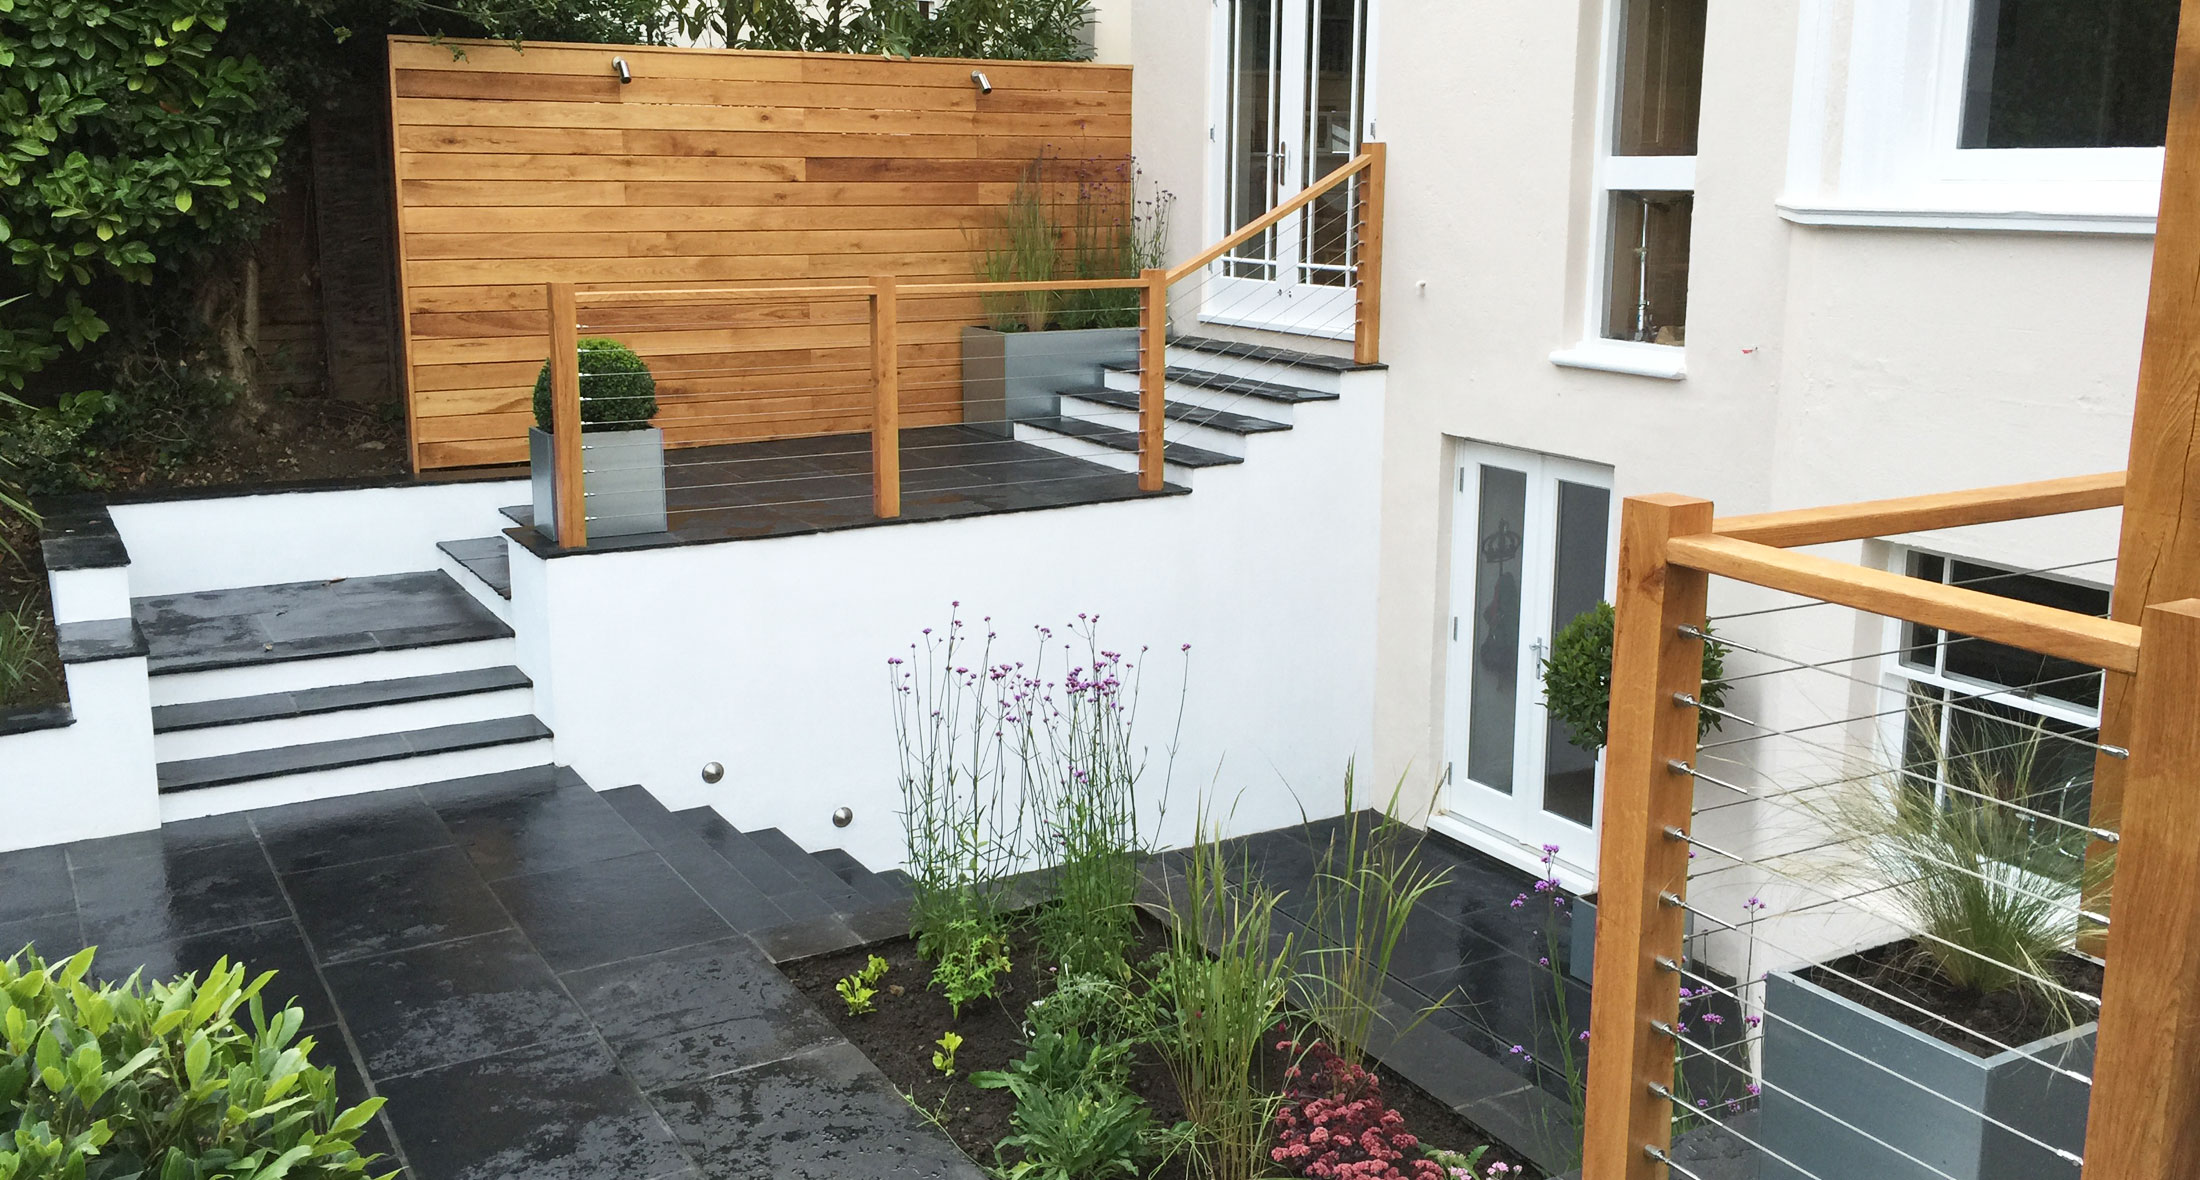 Completed garden design and build Tunbridge Wells